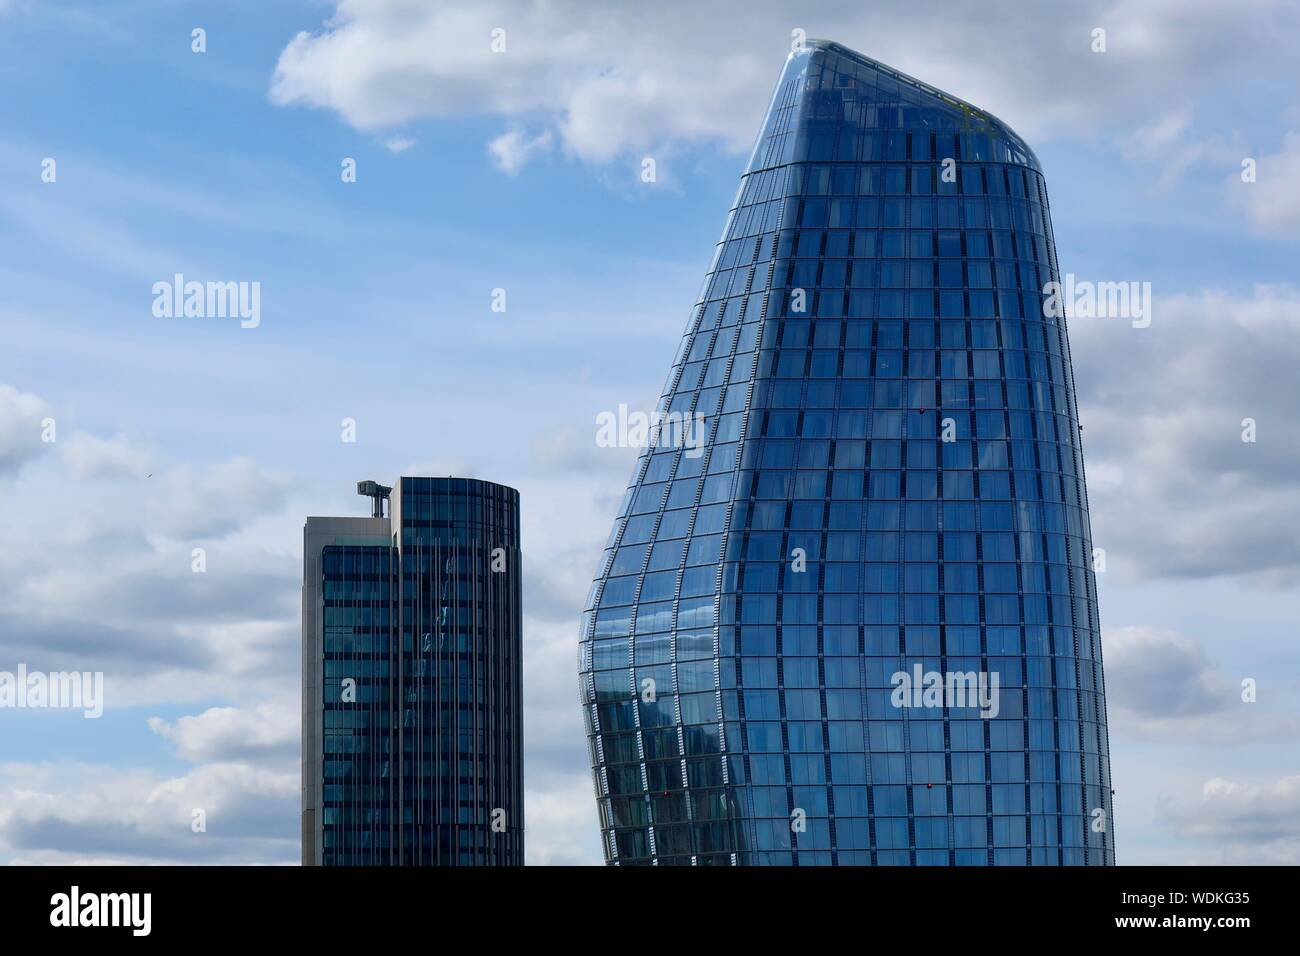 london-uk-29-august-2019-one-blackfriars